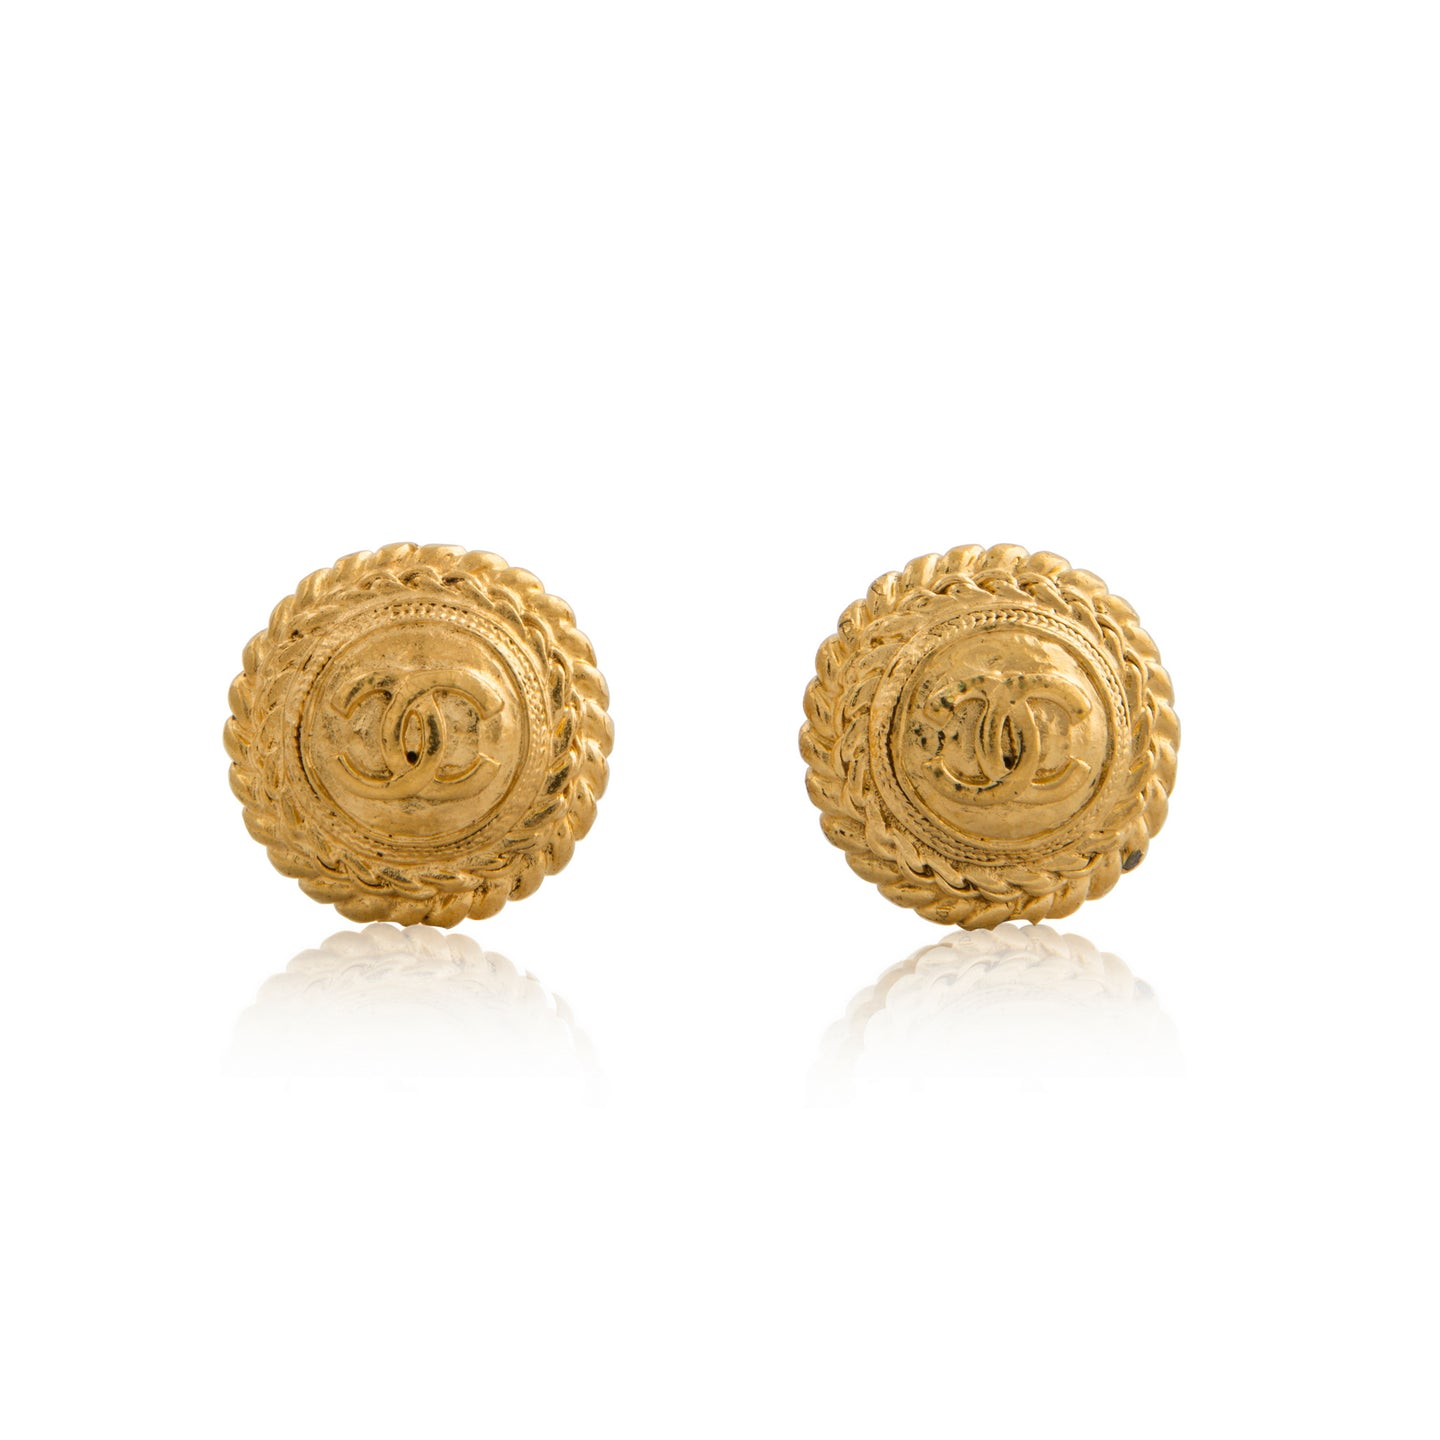 Vintage Chanel Traditional CC Earrings